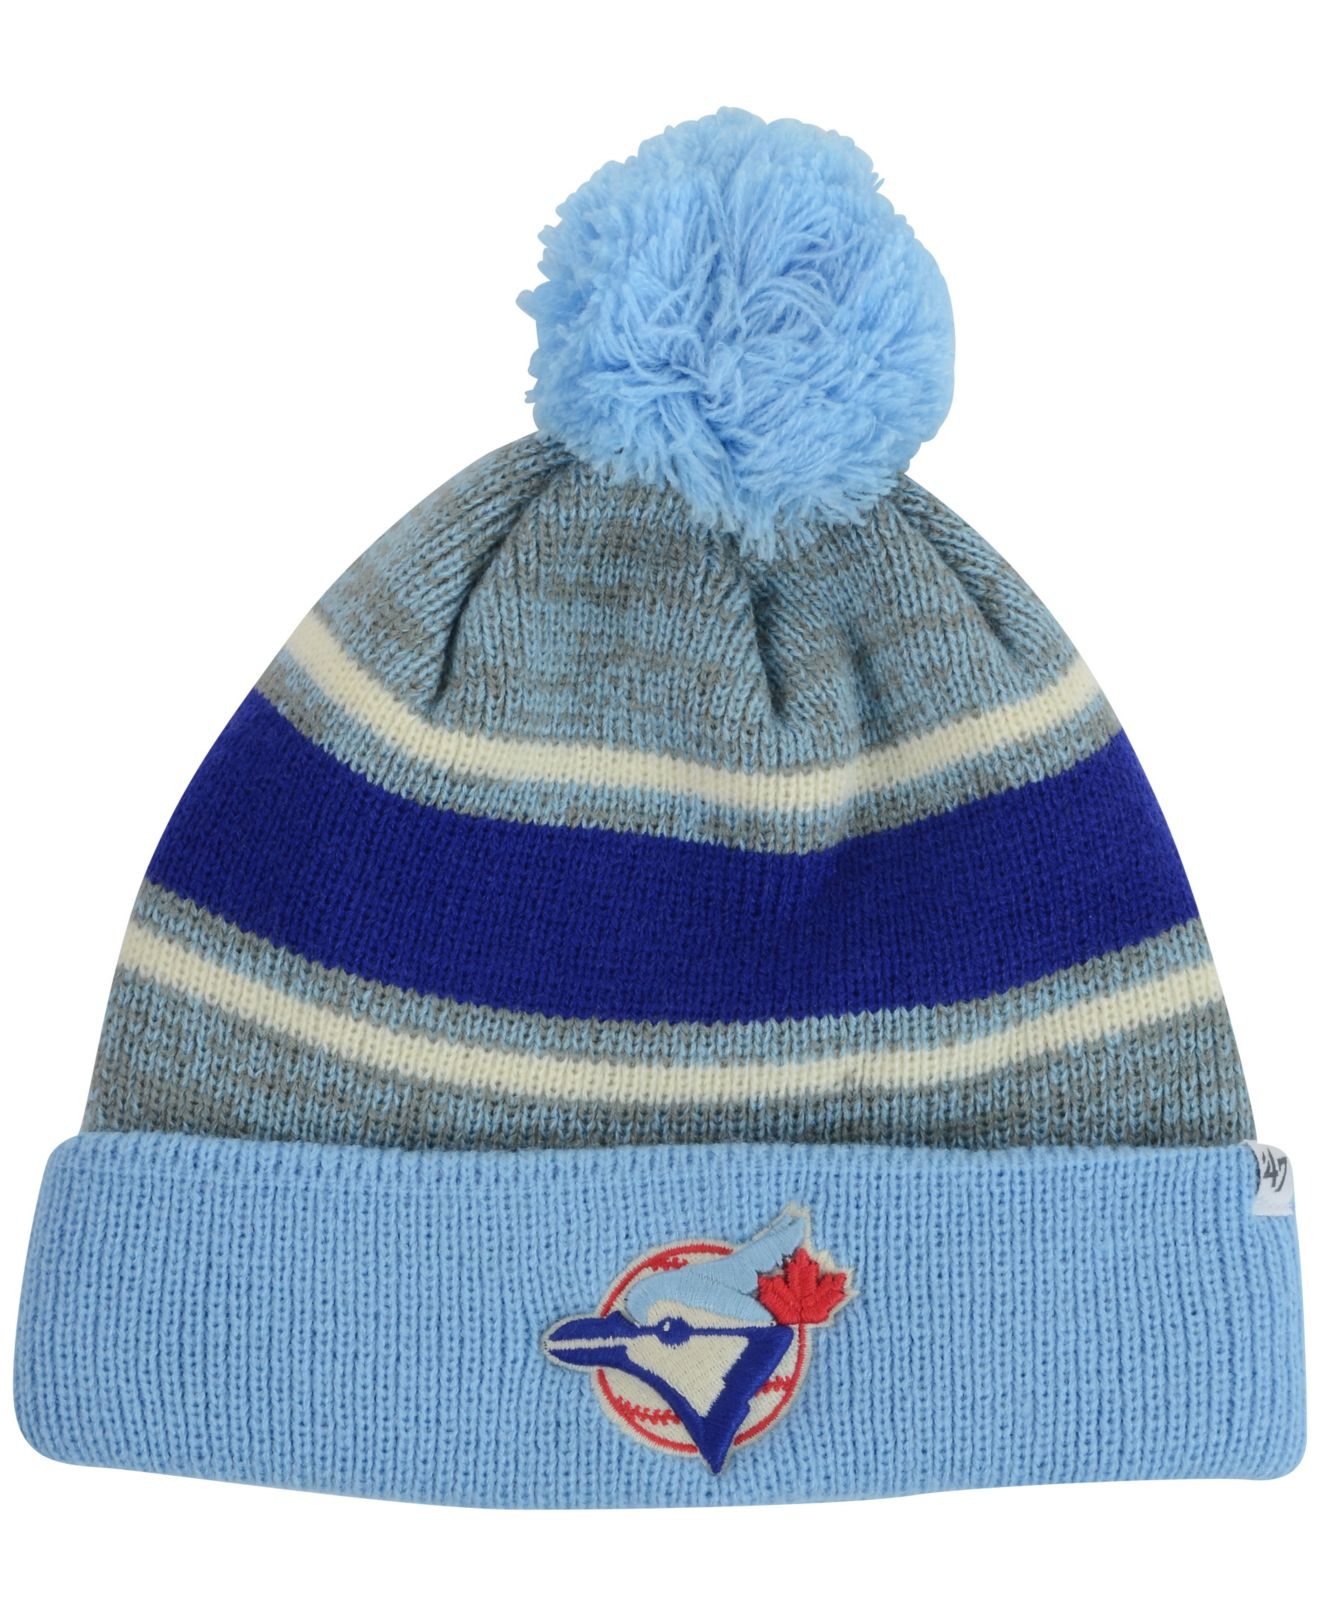 a130235d8e1 Lyst - 47 Brand Toronto Blue Jays Fairfax Knit Hat in Blue for Men